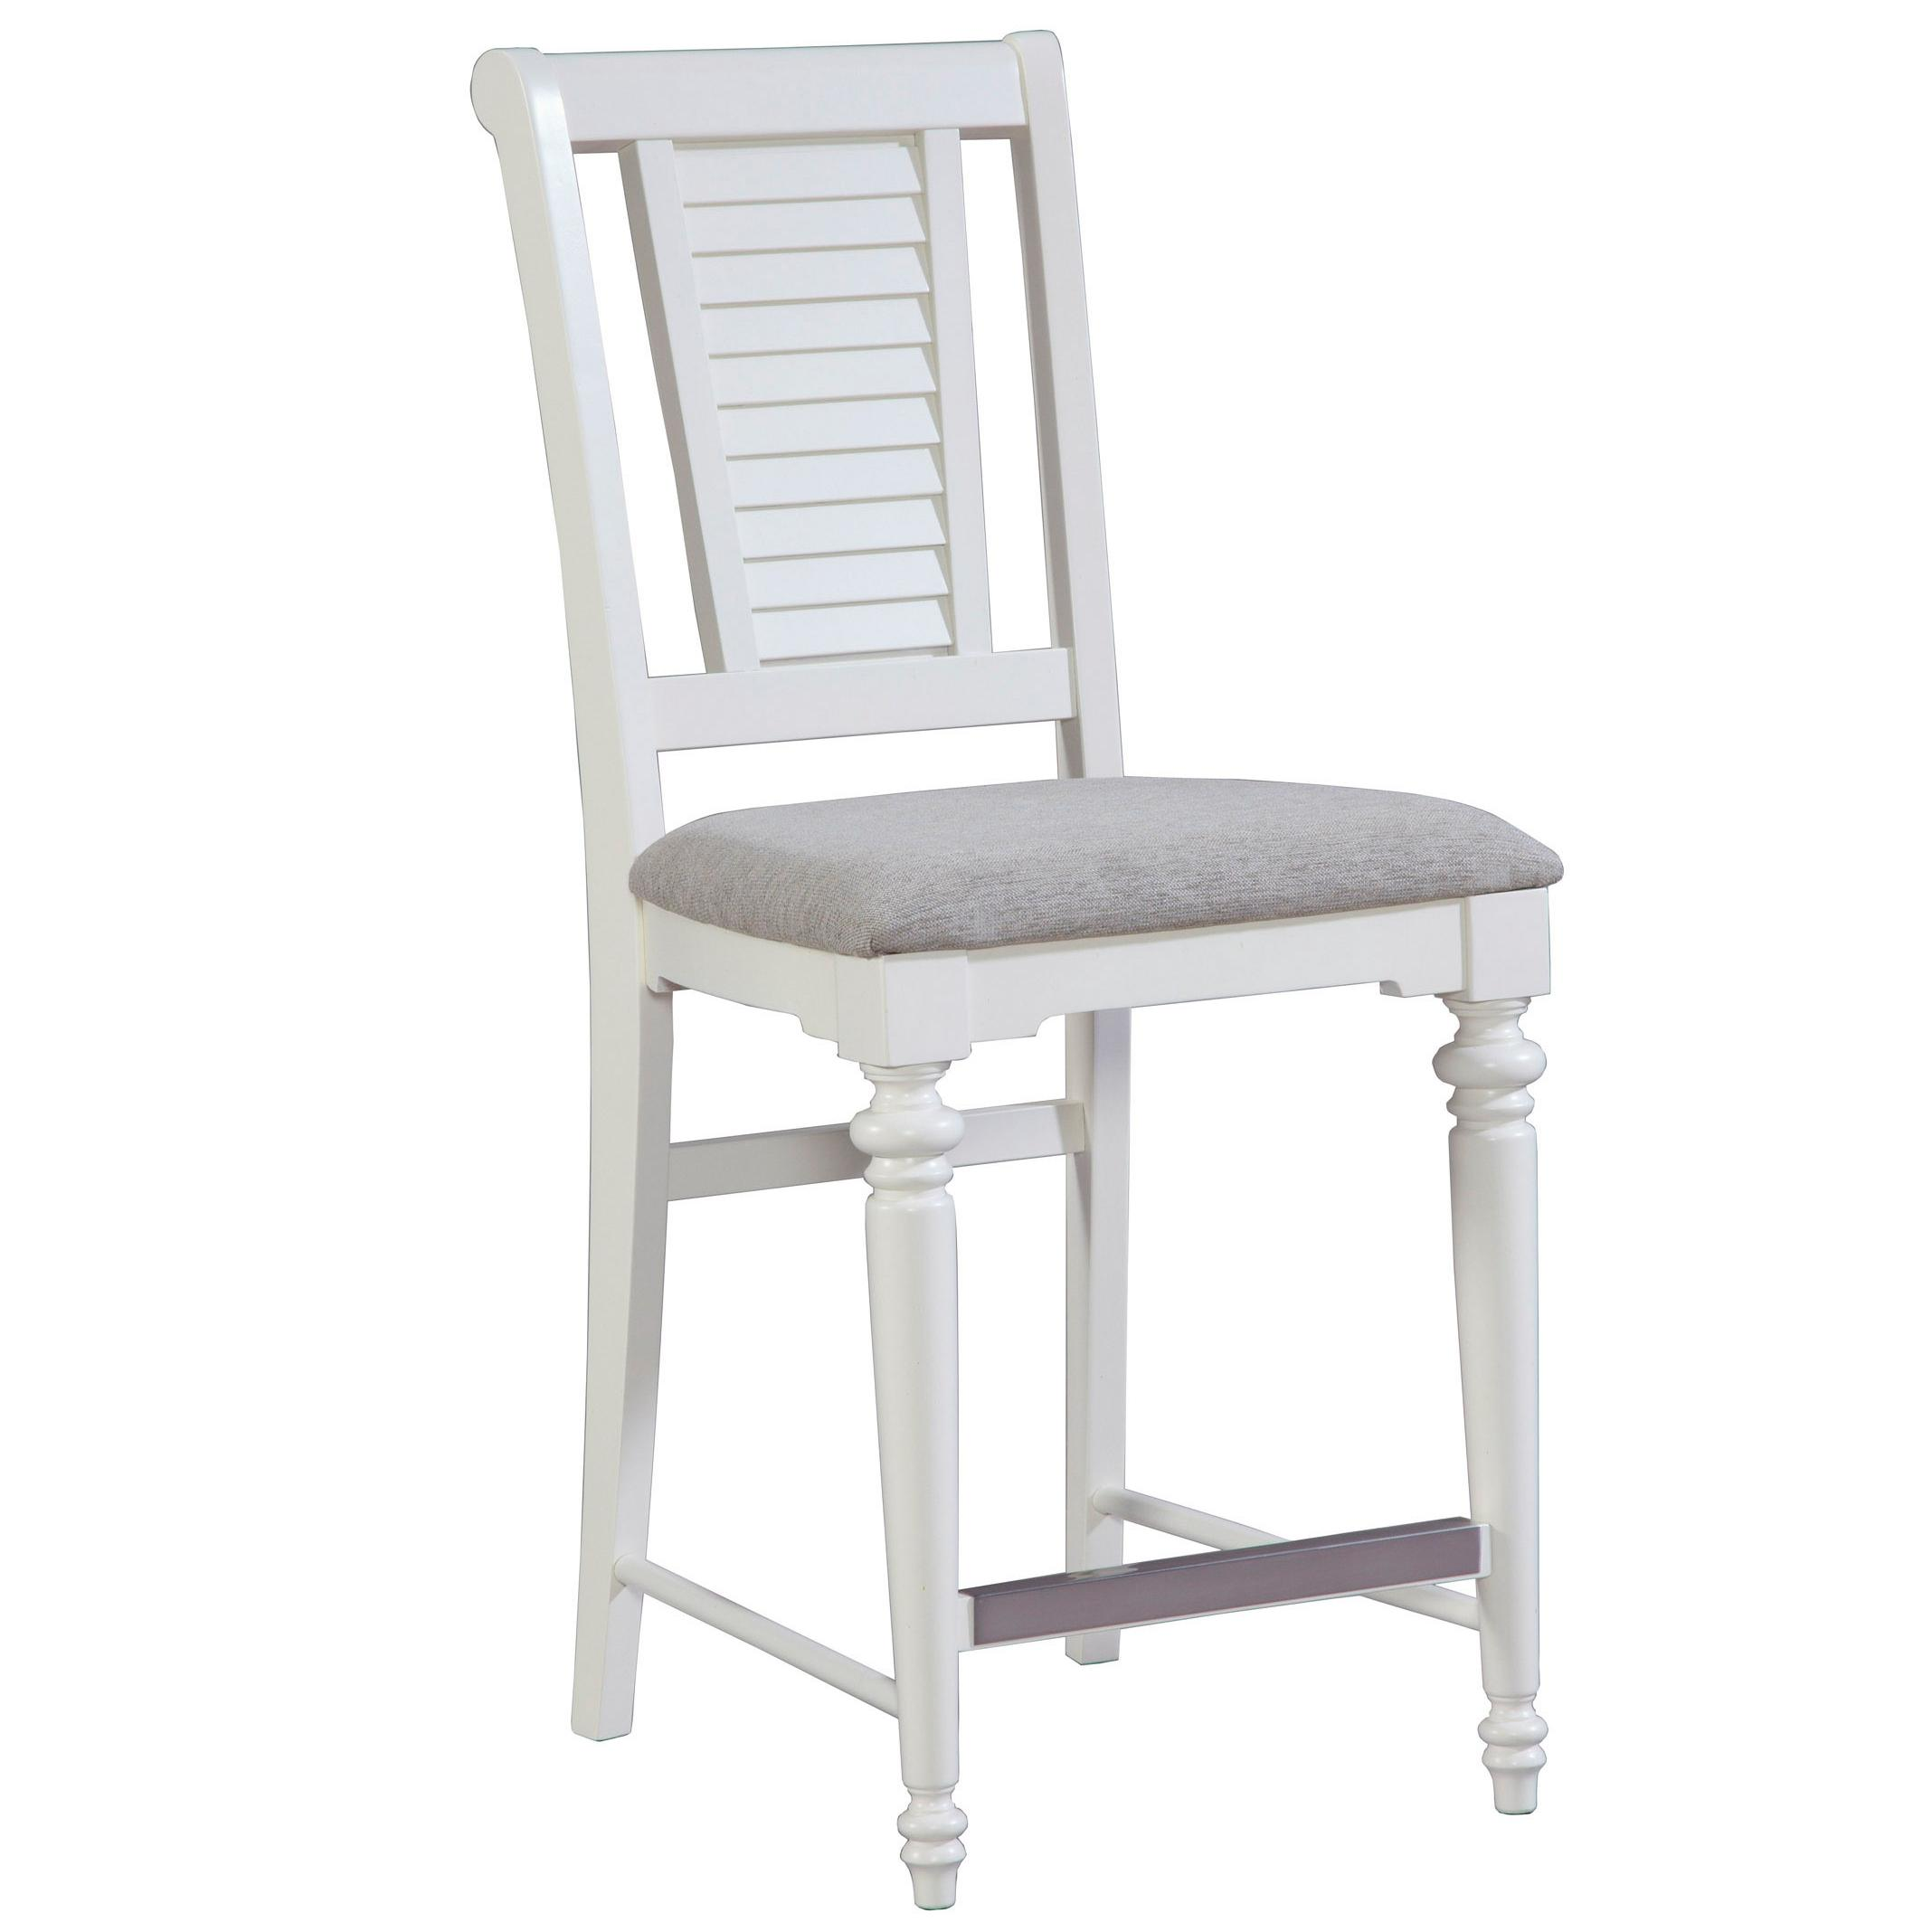 Broyhill Furniture Seabrooke Upholstered Counter Stool - Item Number: 4471-591